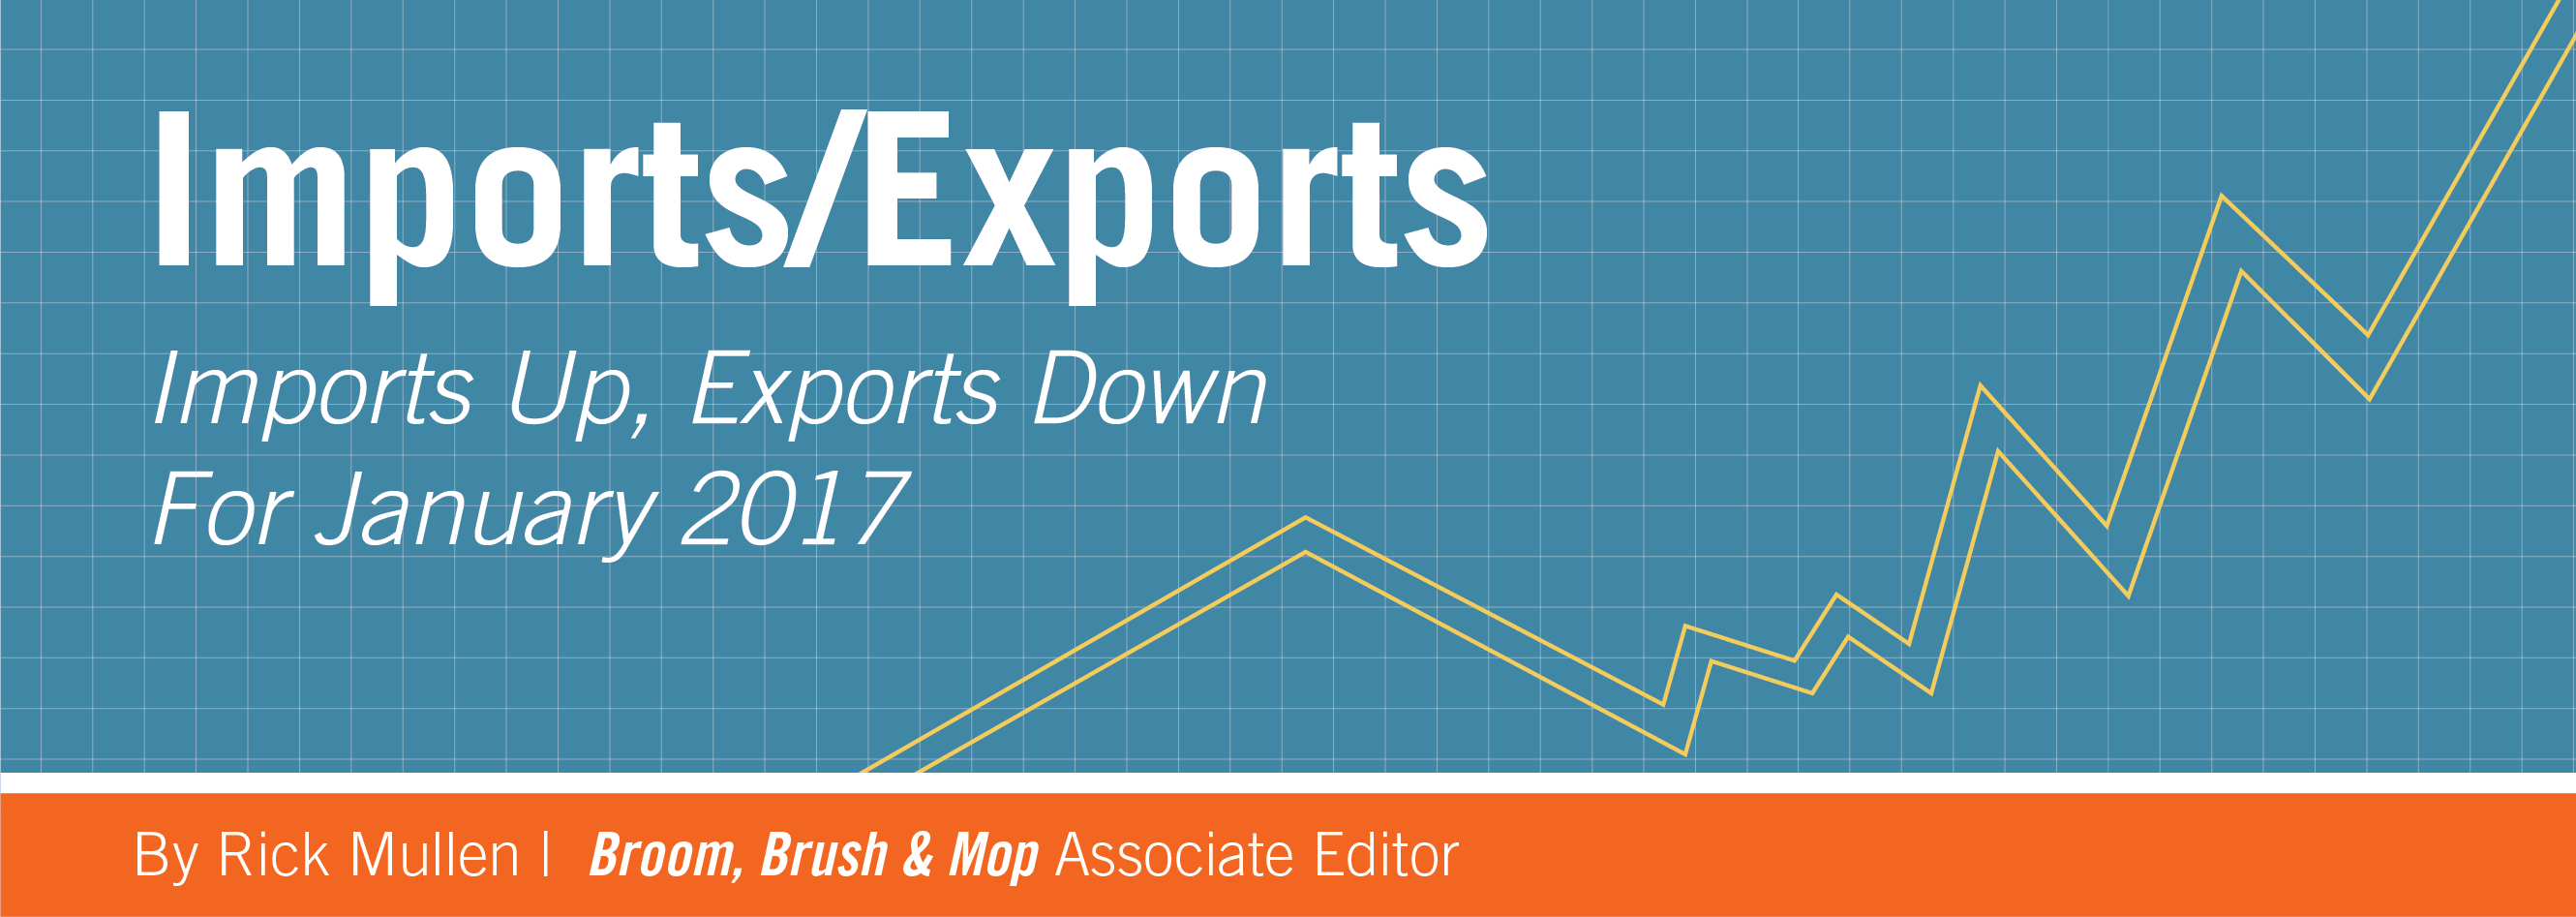 Imports/Exports